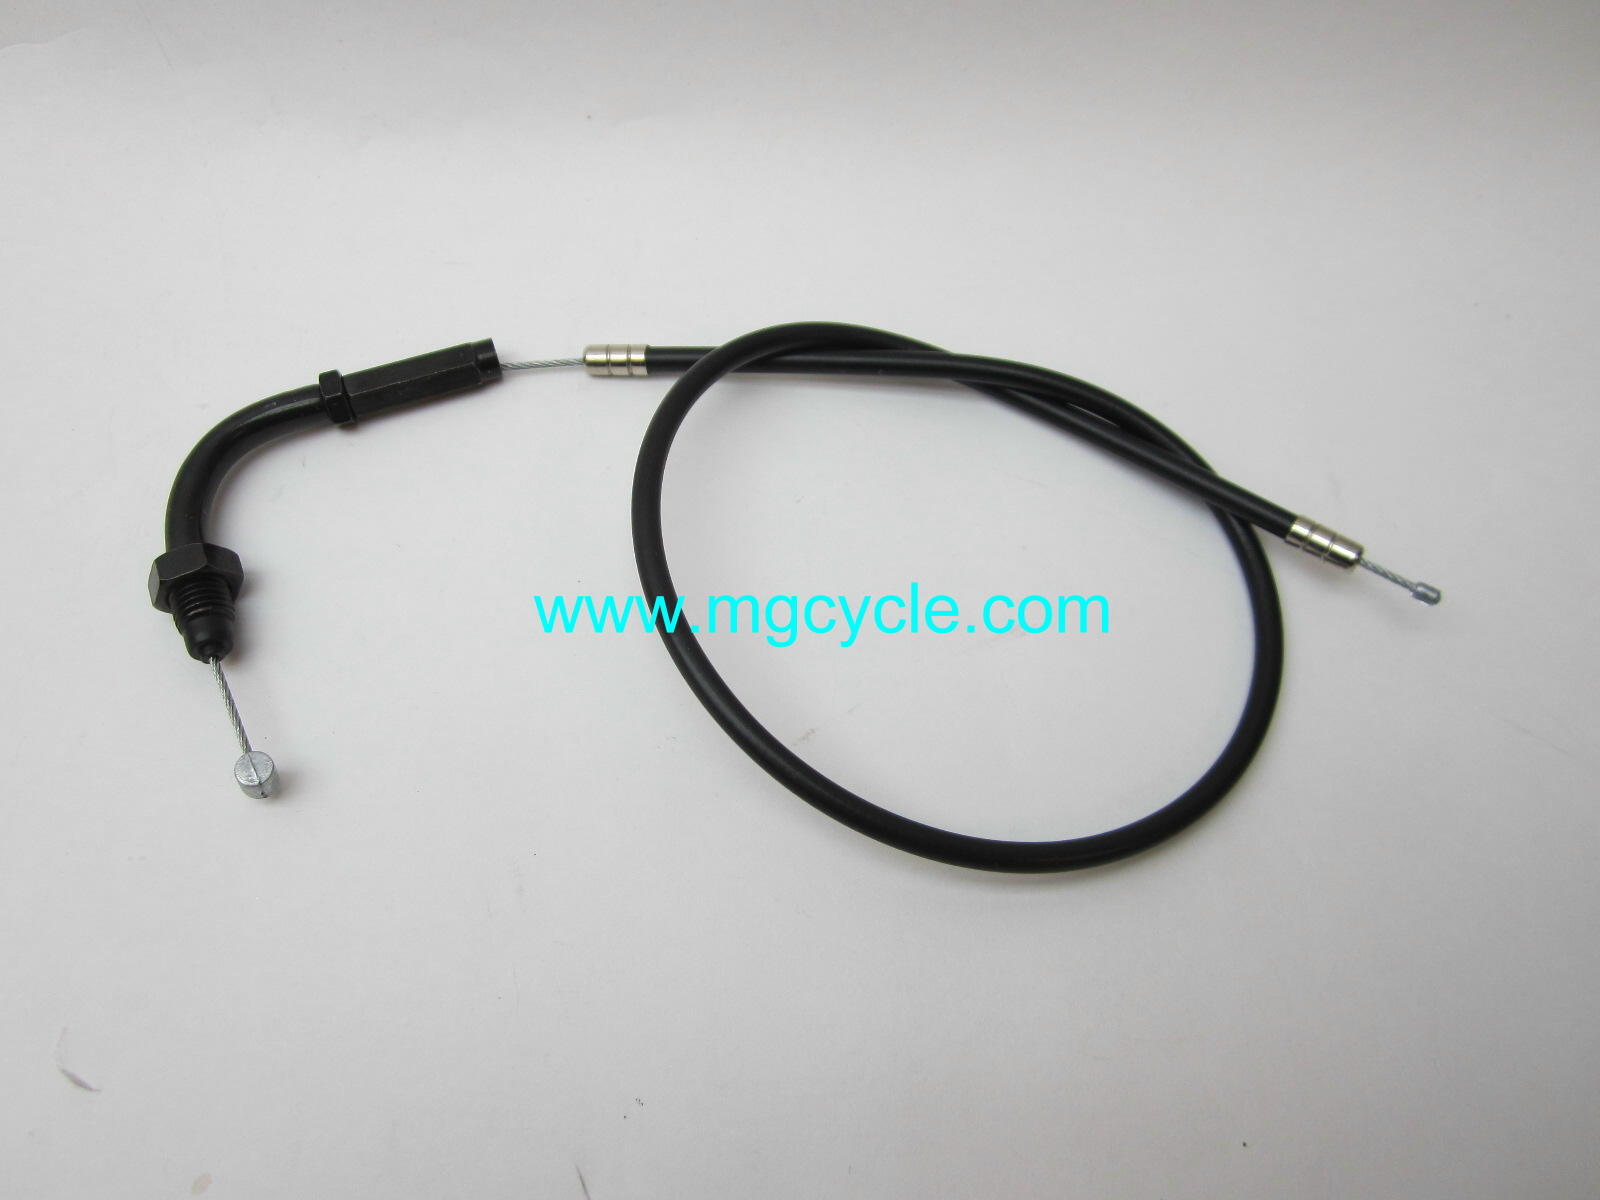 Throttle cable, Sport 1100 carb upper GU37117505